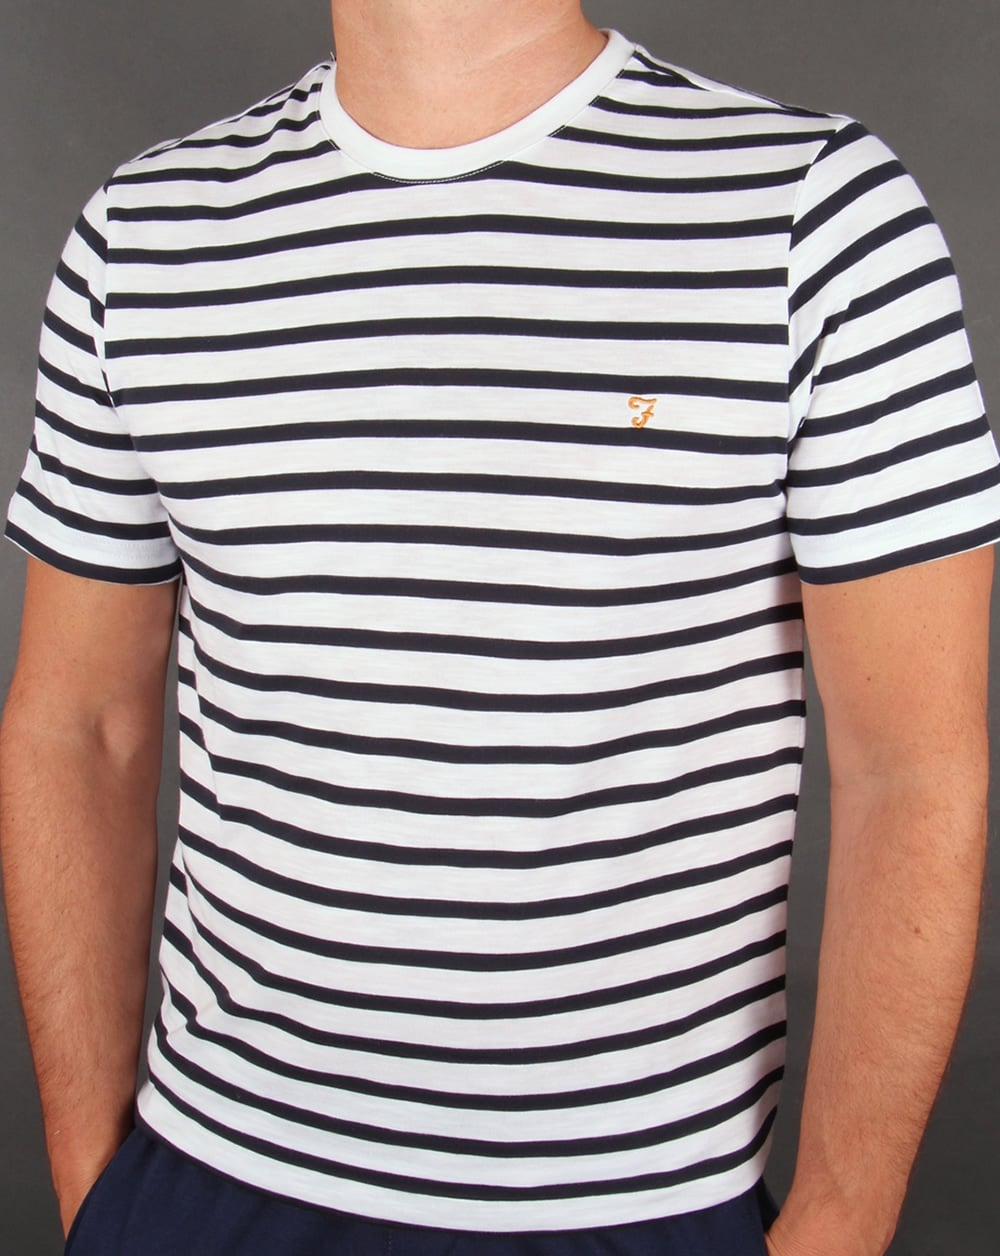 Farah gieger striped t shirt white navy crew neck tee